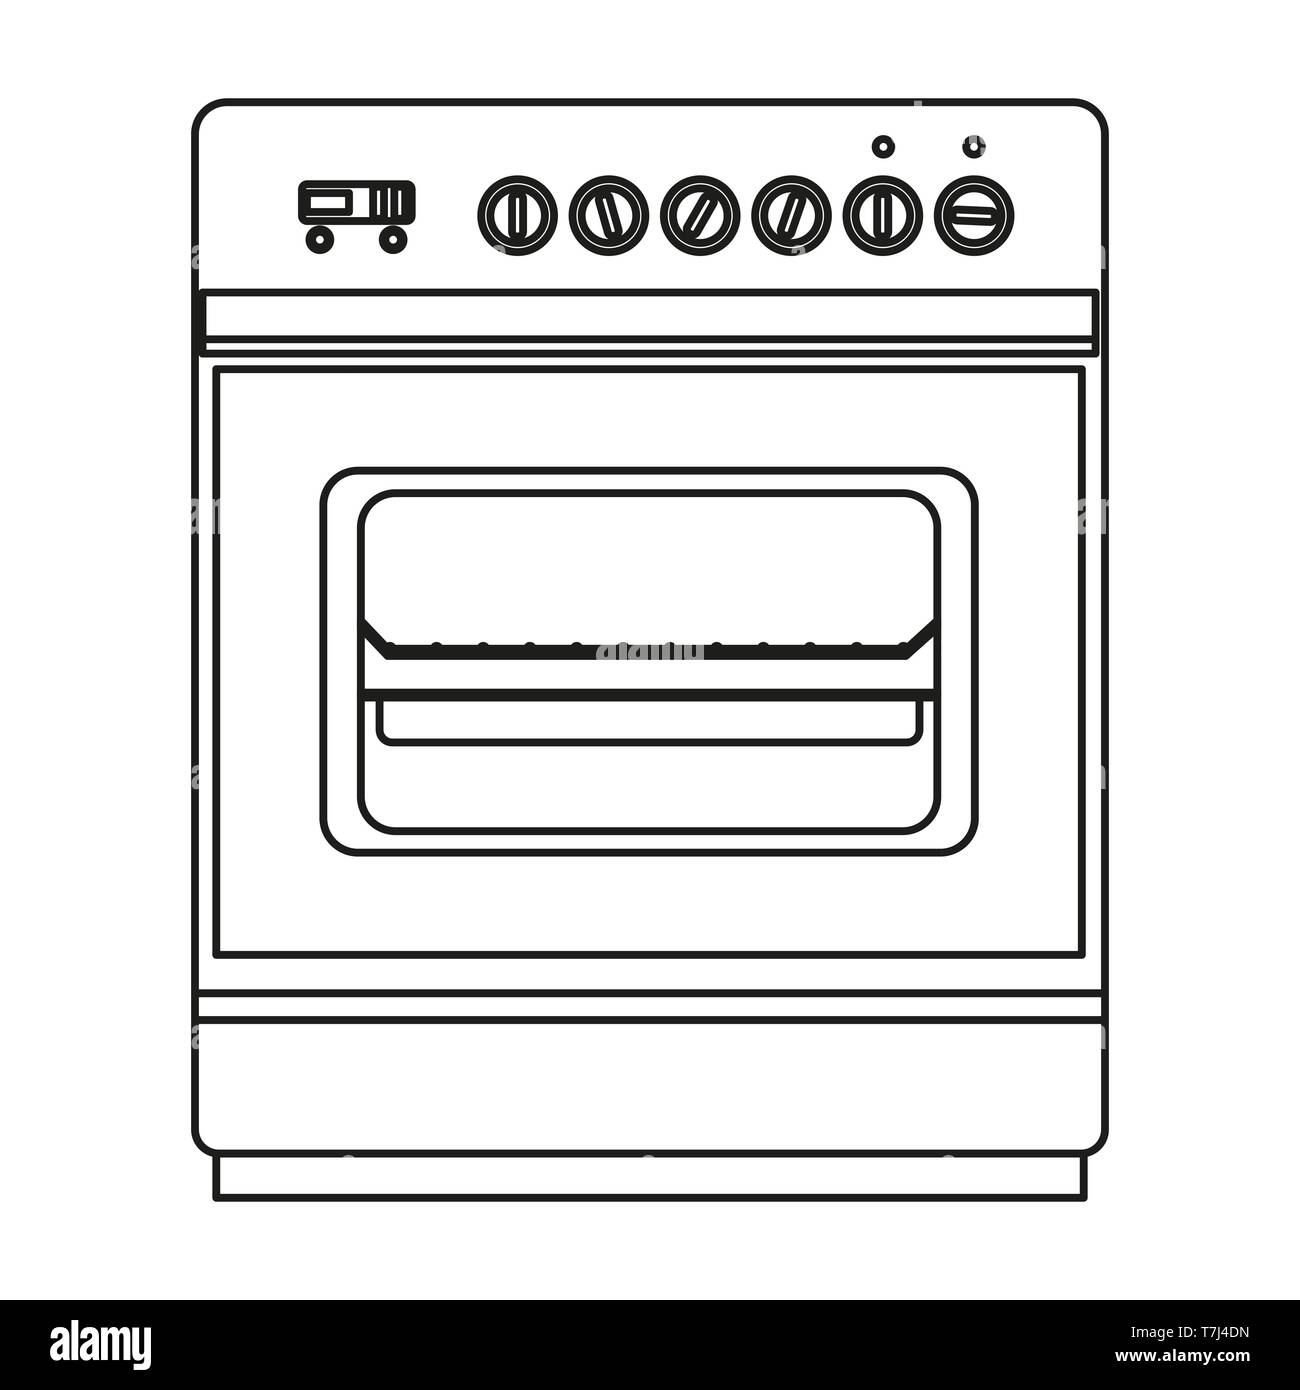 Stove line icon isolated on white background. Outline thin equipment pictogram vector. - Stock Image